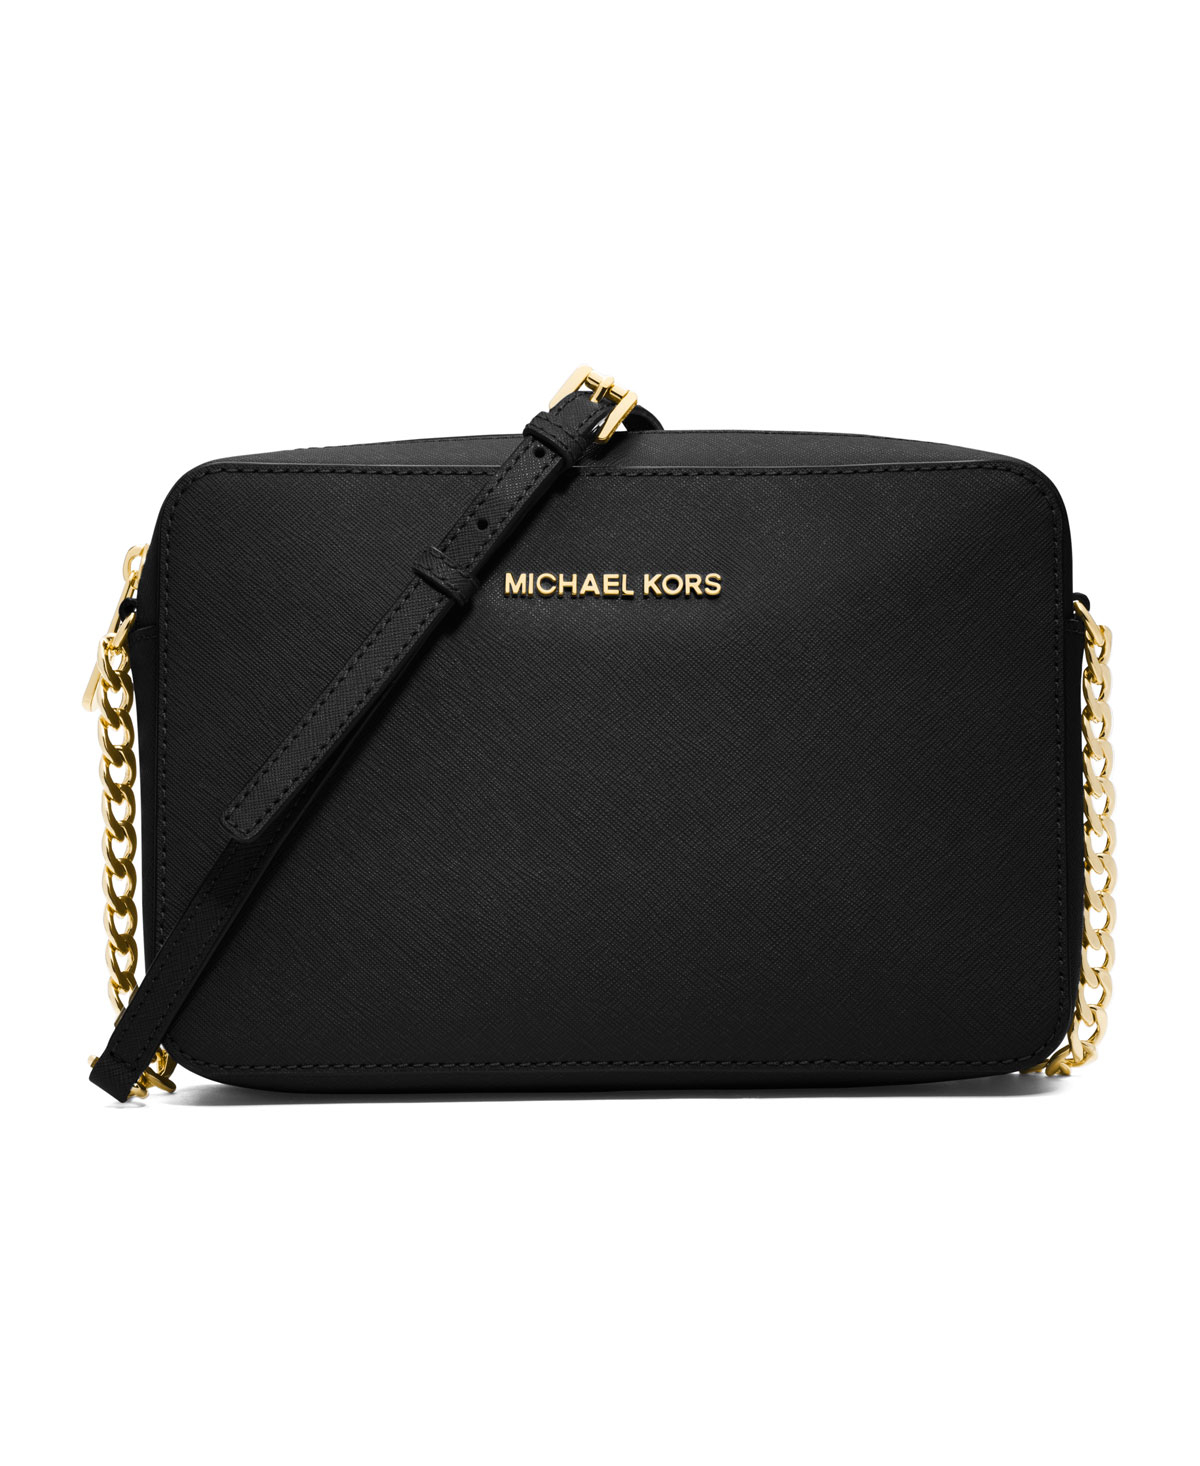 Michael Kors Crossbody Laukut : Michael kors large jet set crossbody in black lyst